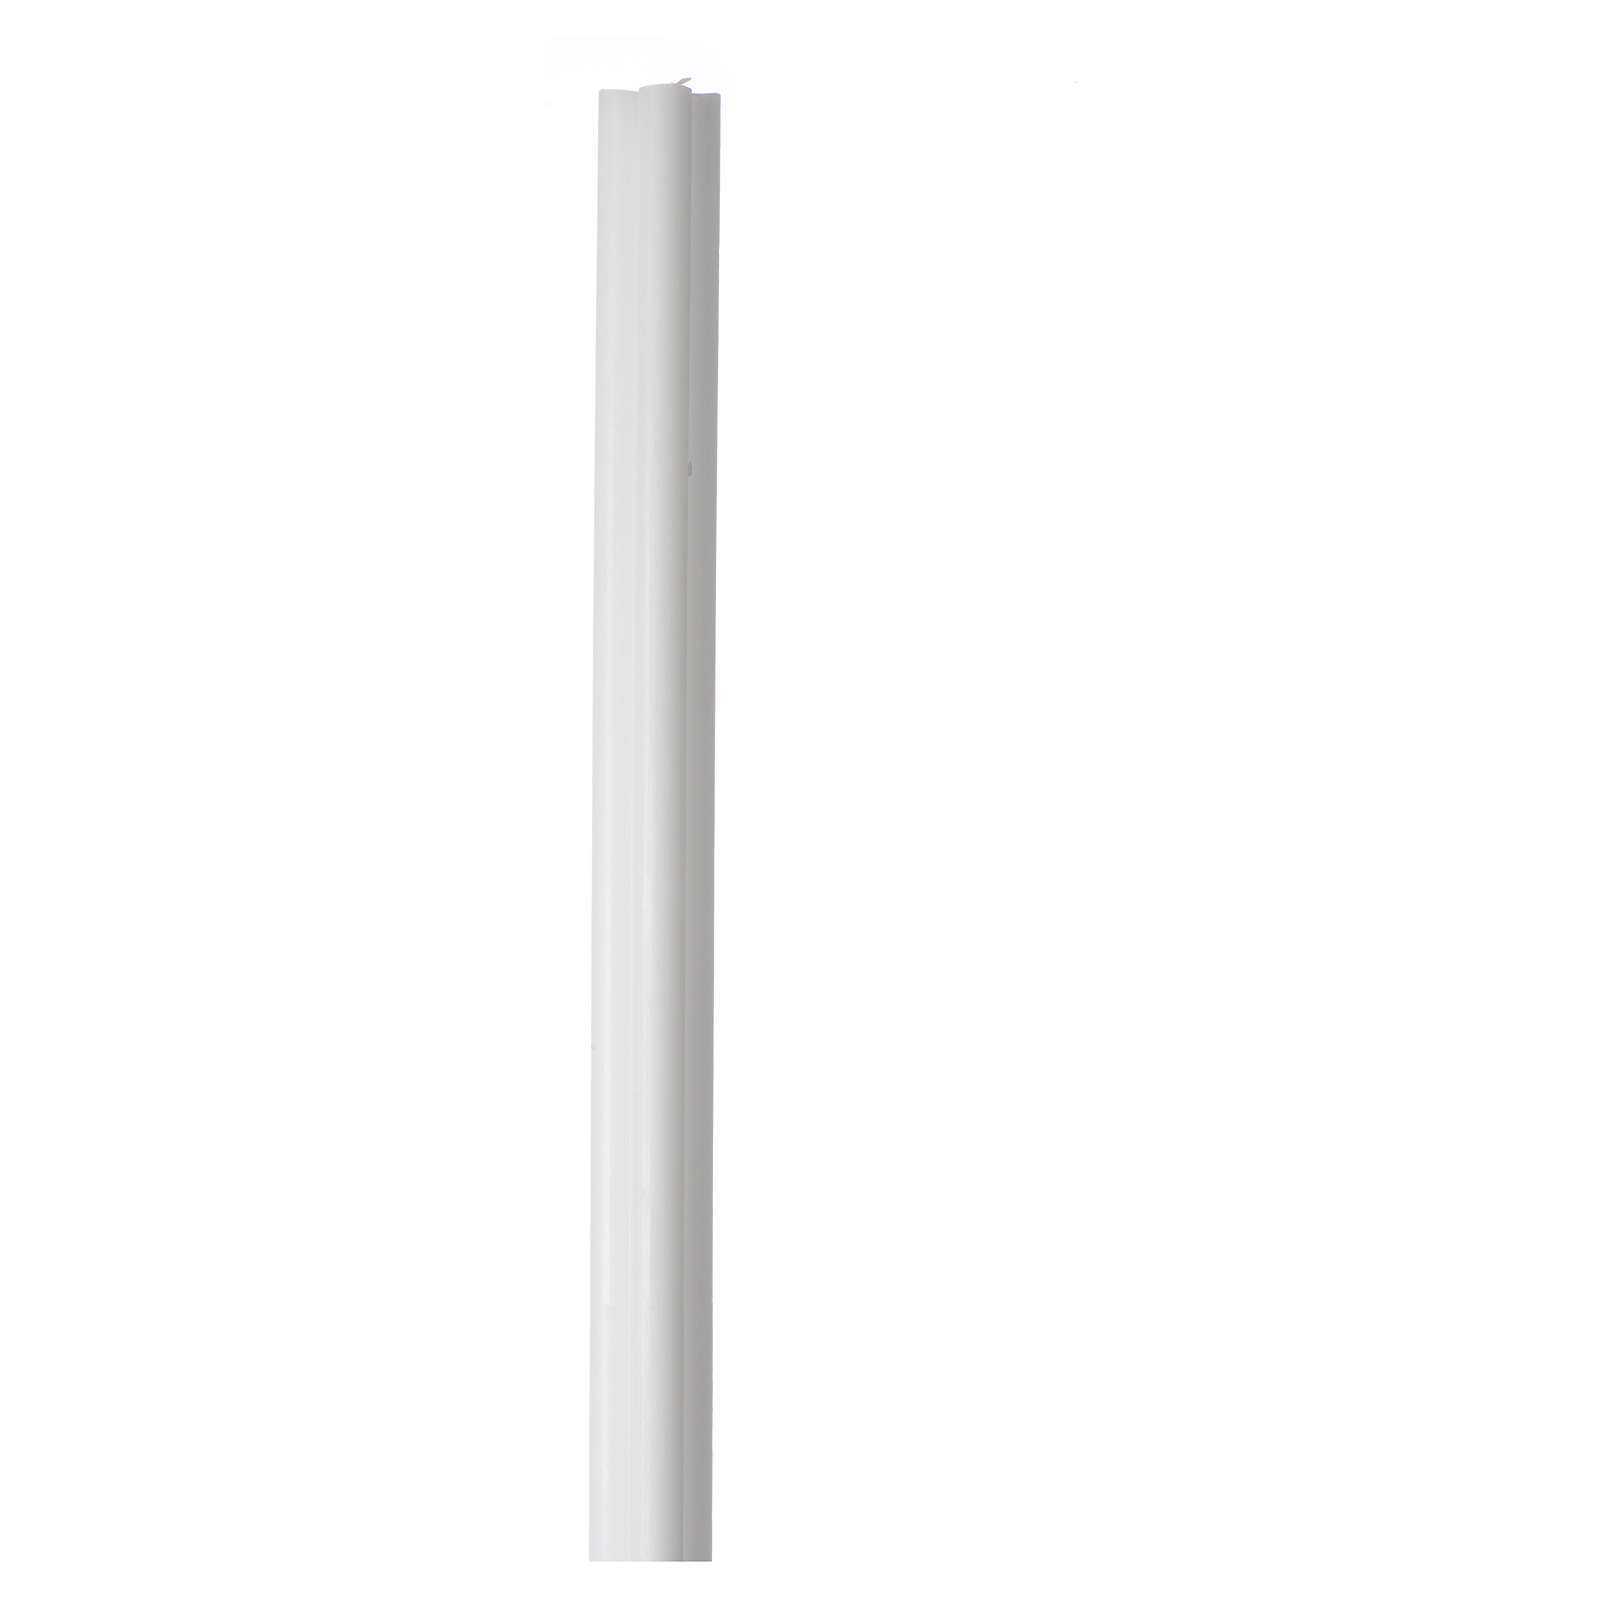 Antique torch candle 800x50x50mm in white wax, pack of 6 3